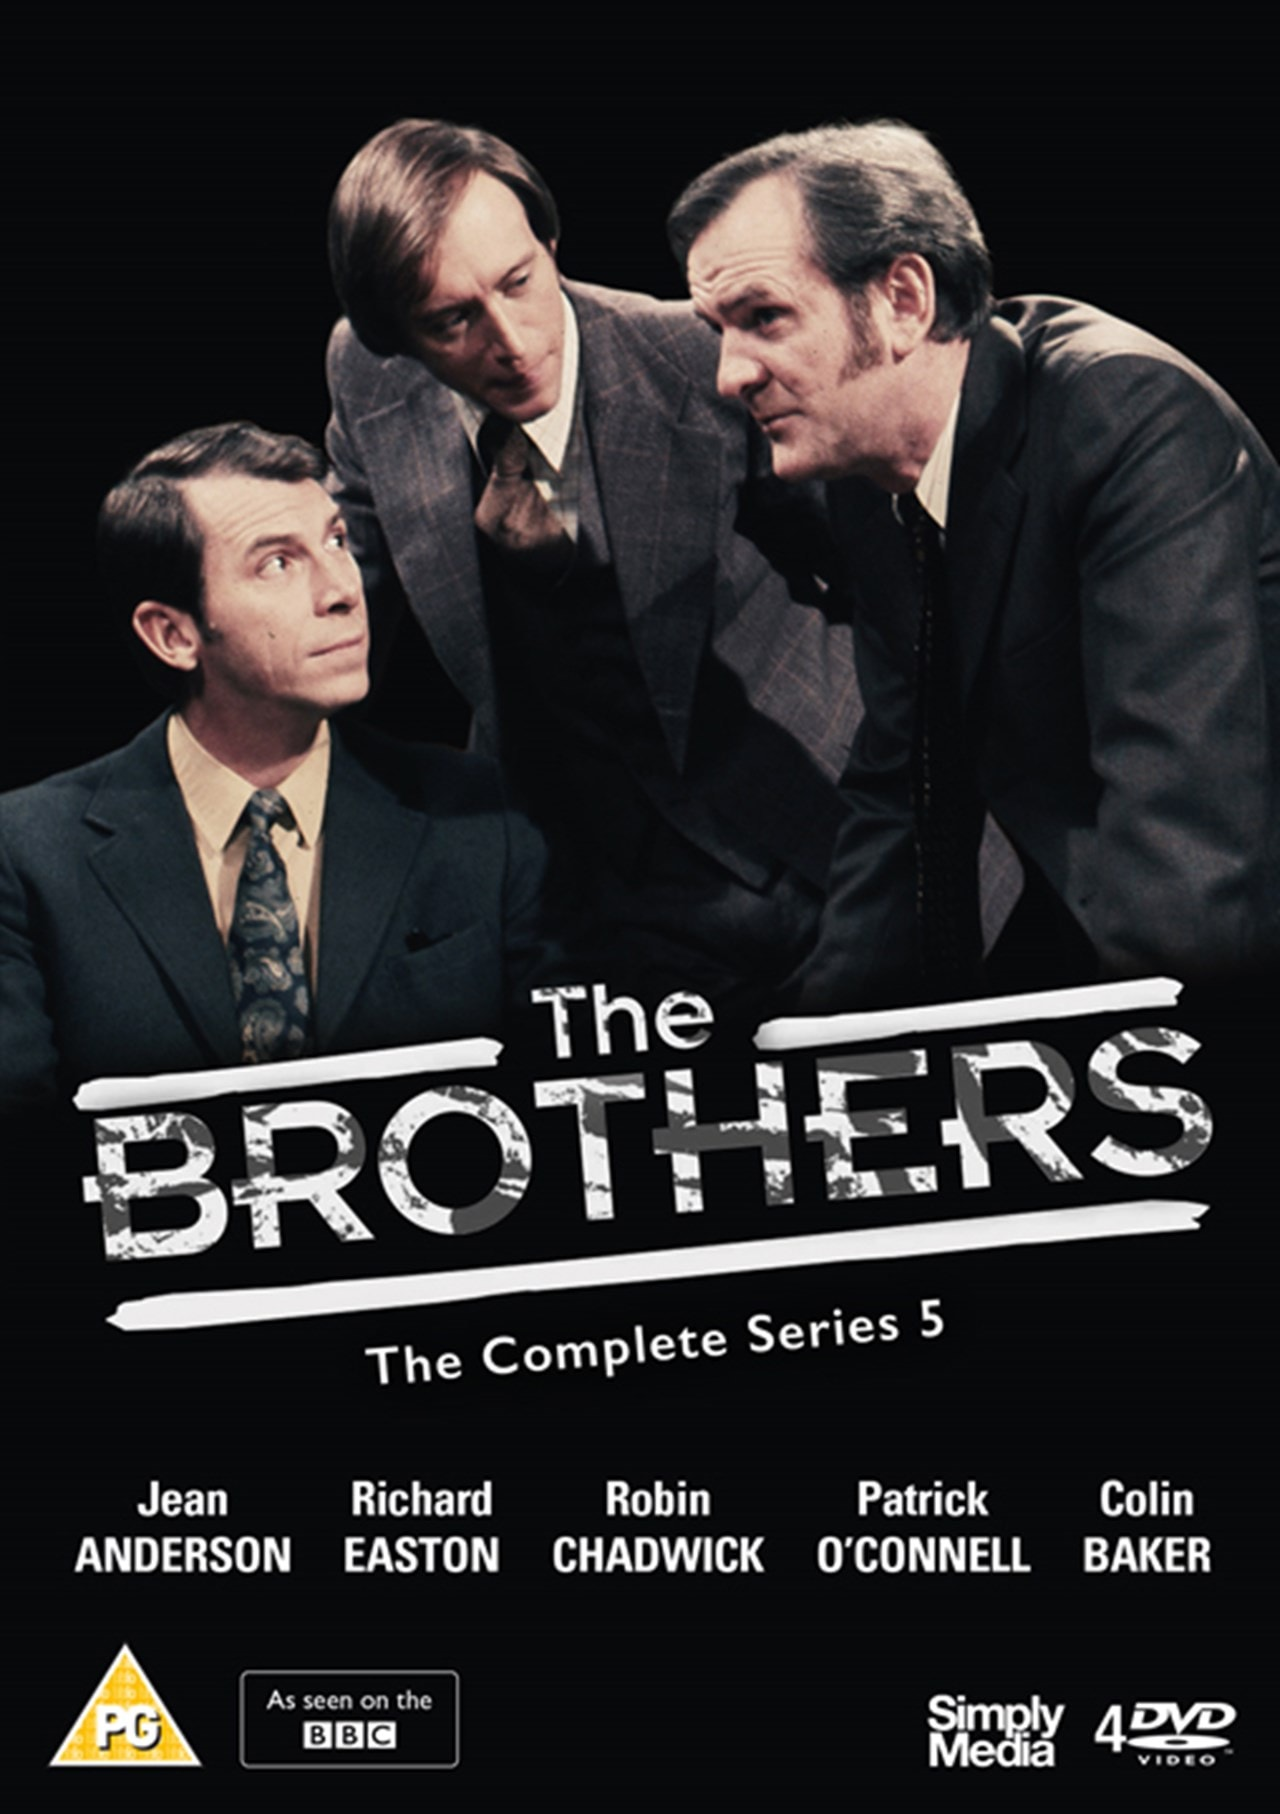 The Brothers: The Complete Series 5 - 1